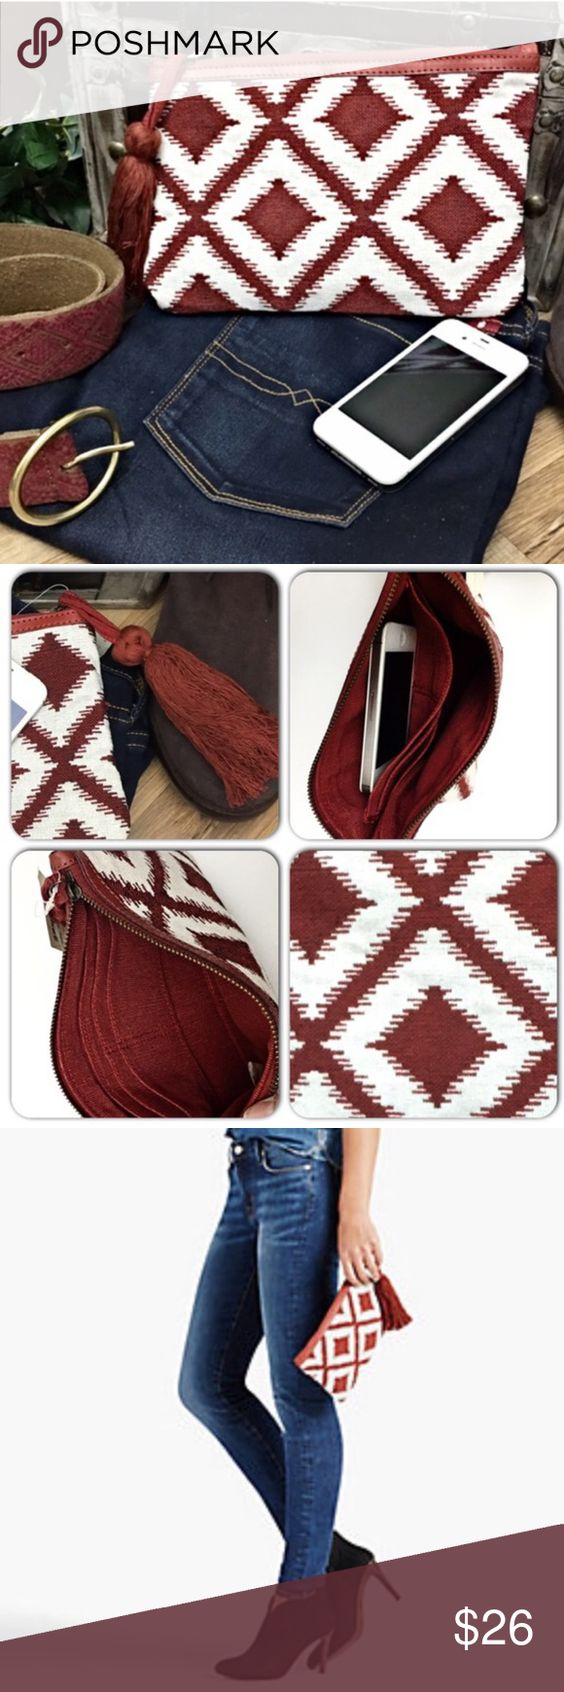 "Lucky Brand Brick Red Tribal Clutches w/Tassel-New Perfect for running errands or to keep inside the a large tote! Versatile pouch crafted from embroidered fabric with an Aztec print and leather trim. Features interior credit card slots and tassel detailing. Approx 9"" long x 6"" high. Brand new with tags! Lucky Brand Bags Clutches & Wristlets"